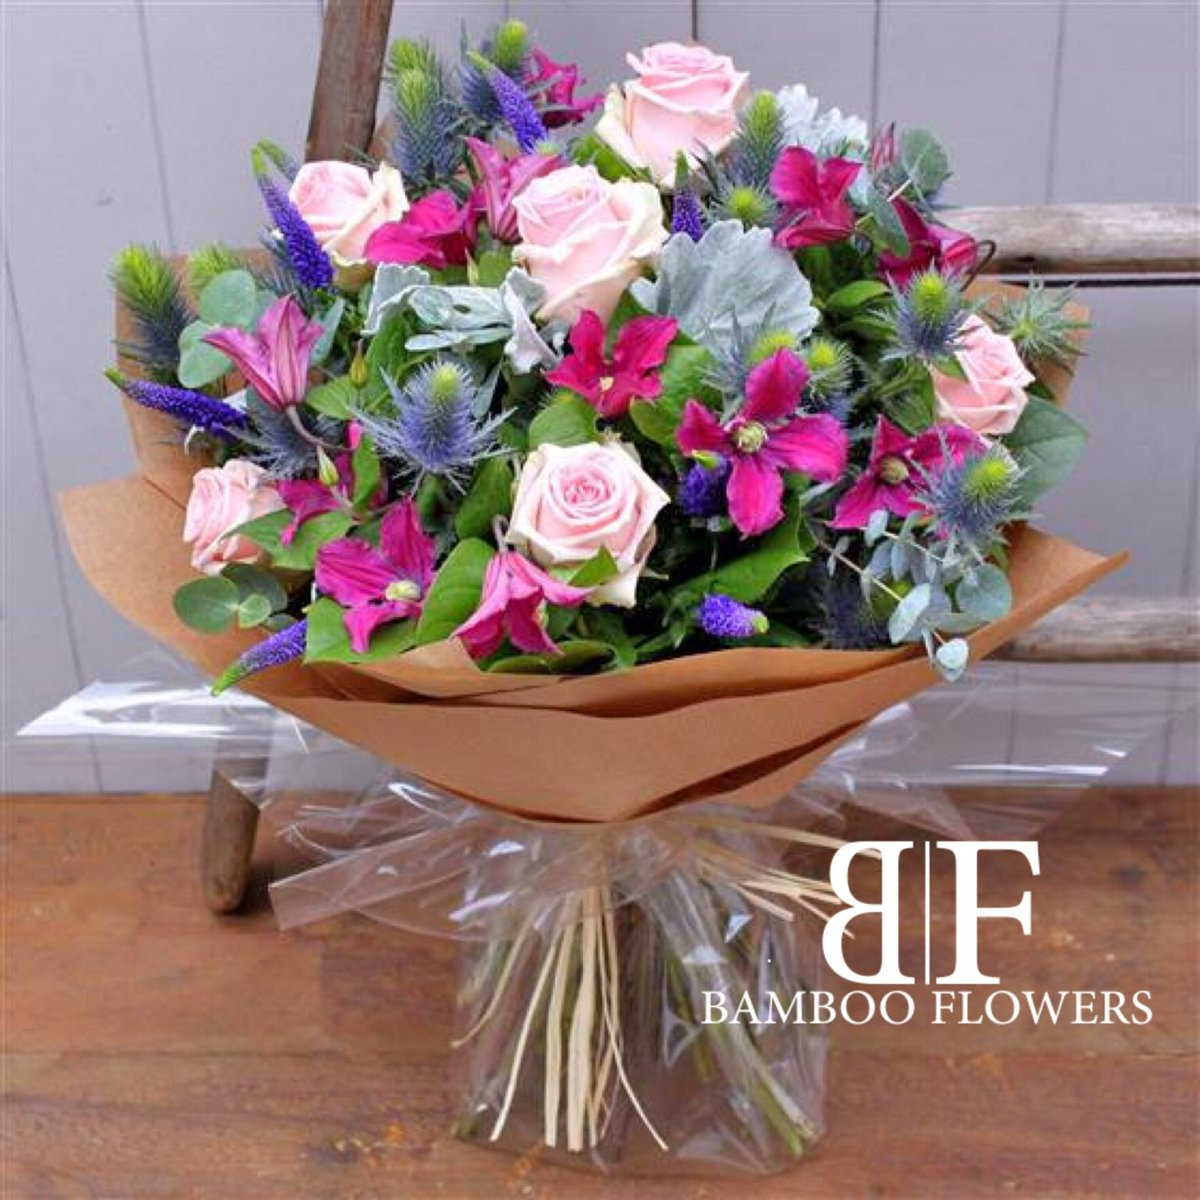 Bamboo Flowers Ltd On Twitter Our Simply Pink Rose Eryngium